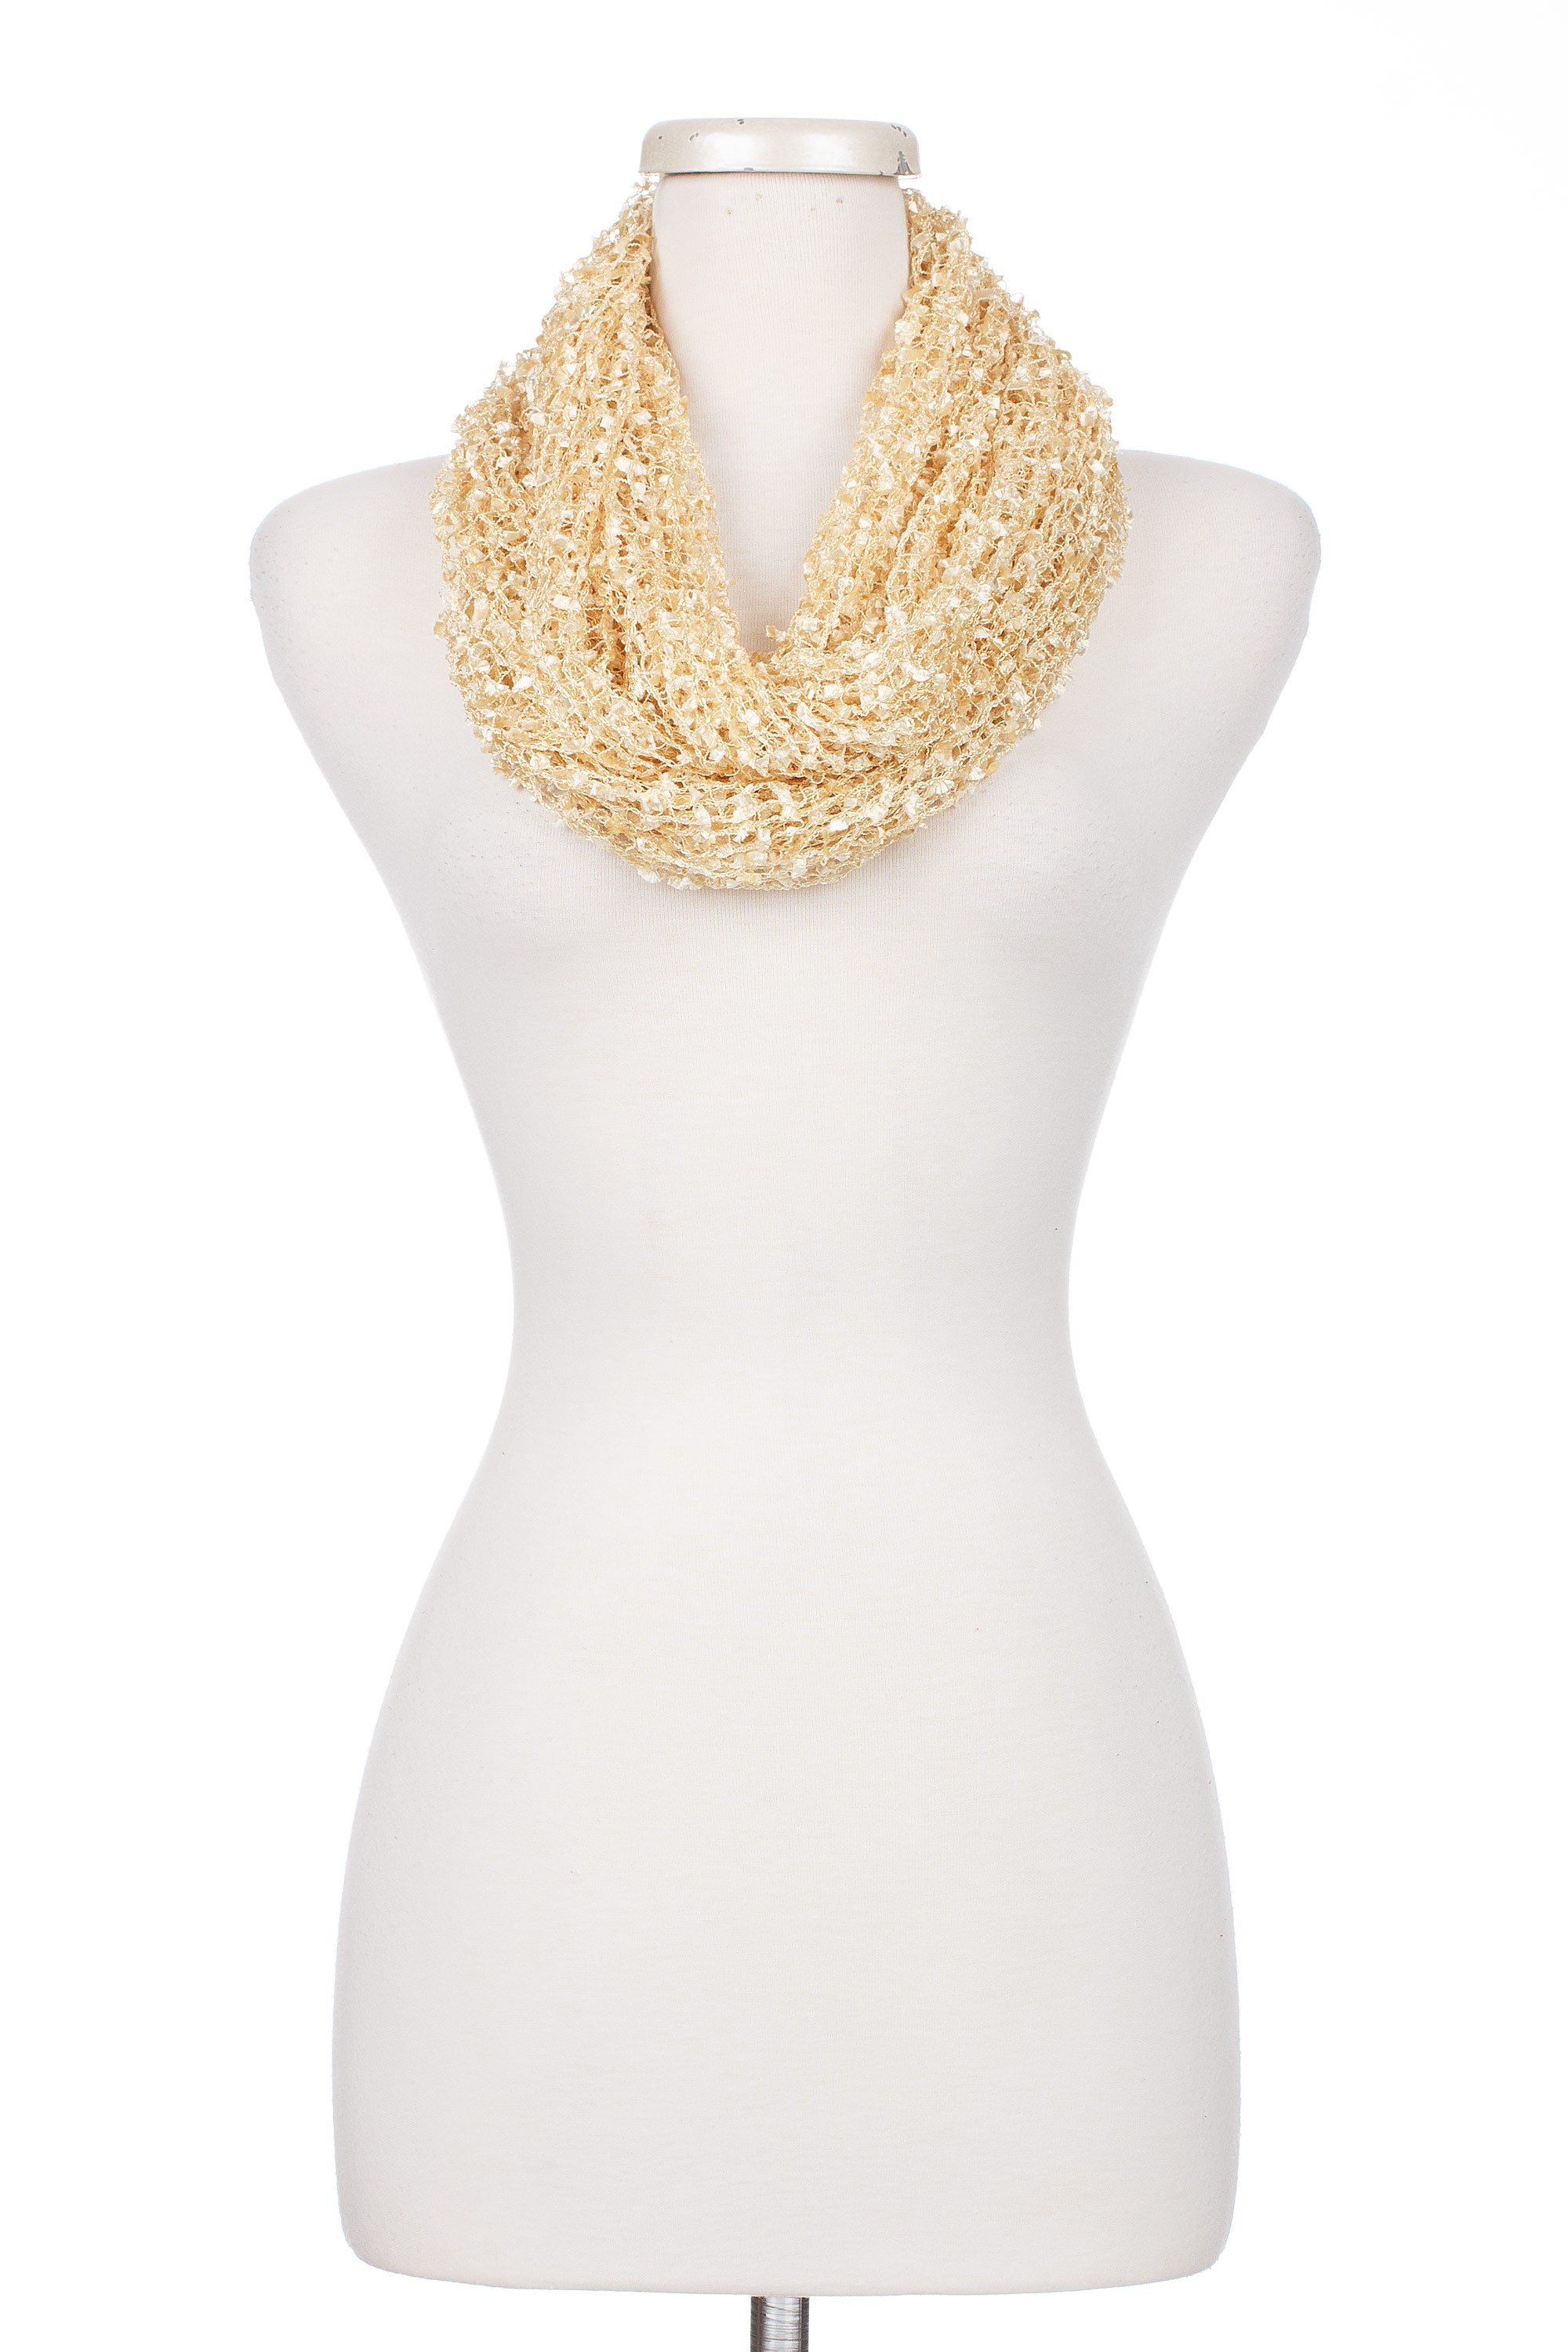 Type 1 Wispy Wheat Infinity Scarf